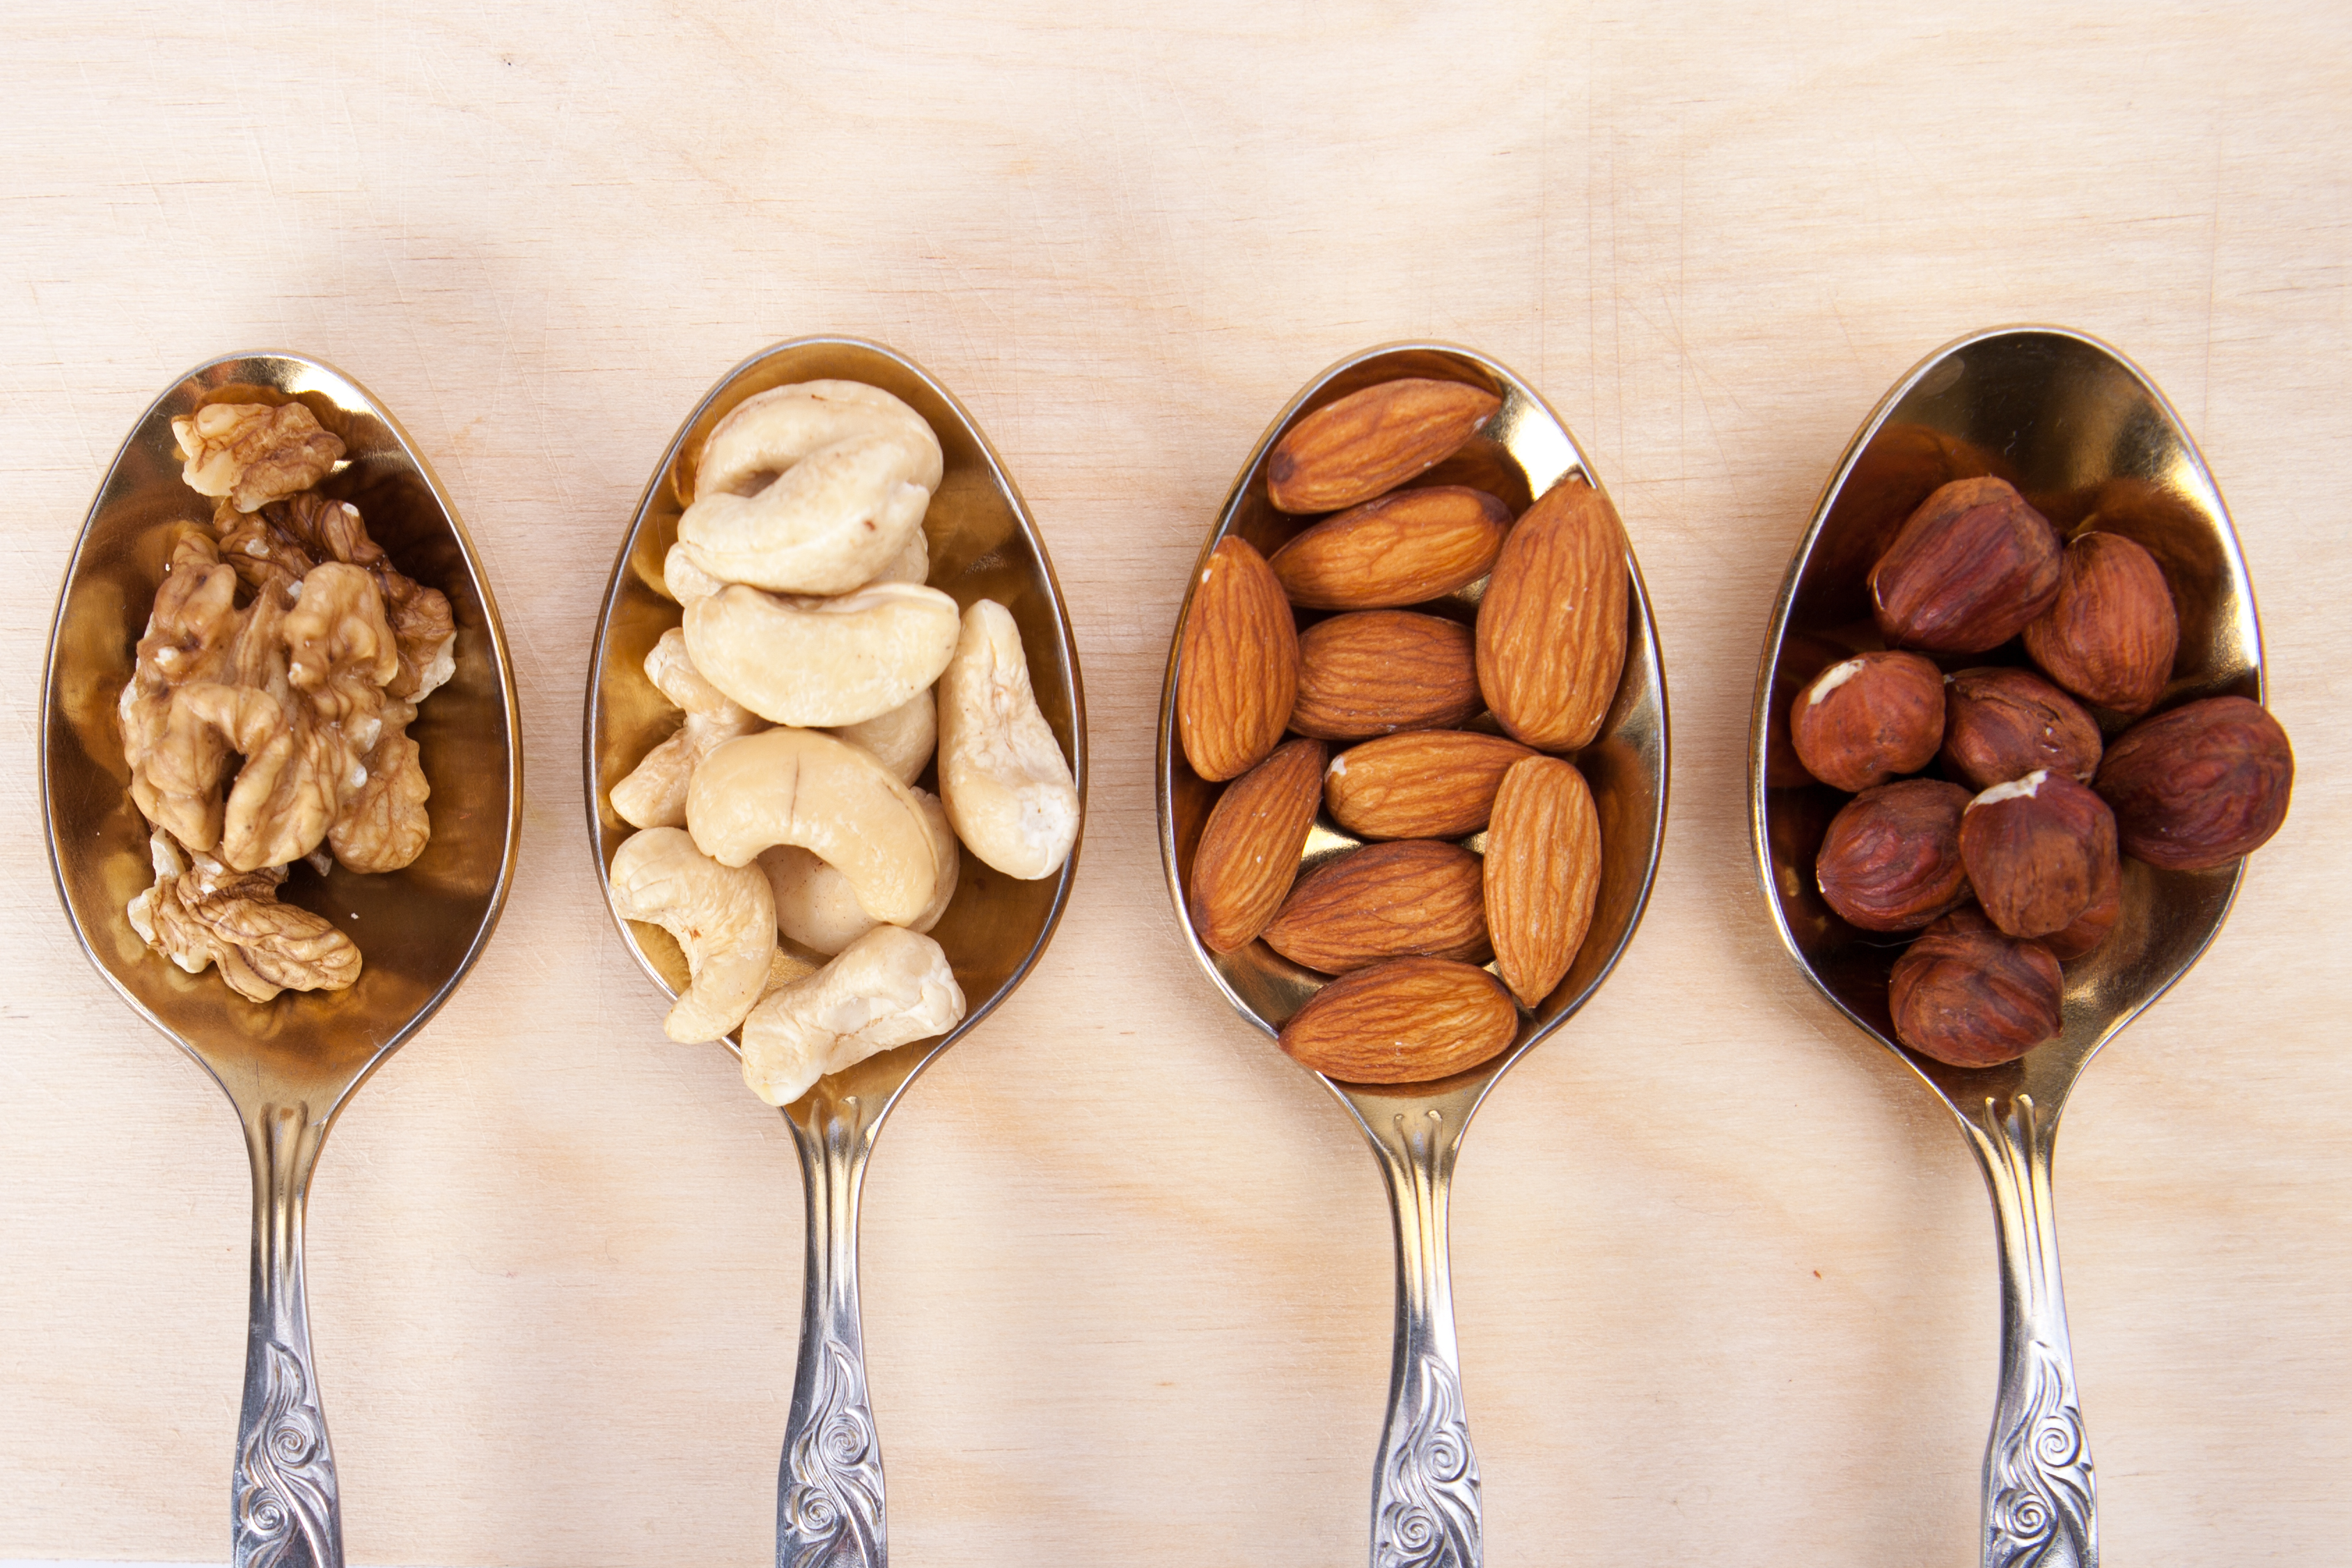 Almonds, cashews, hazlenuts and walnuts on spoons for a healthy snack.